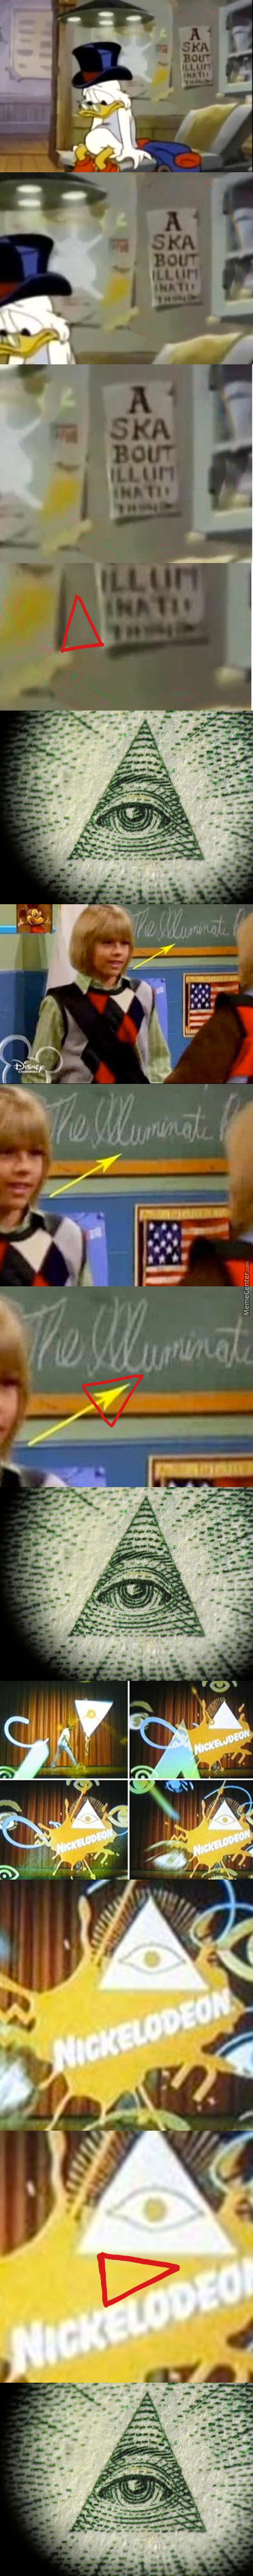 Illuminati Everywhere